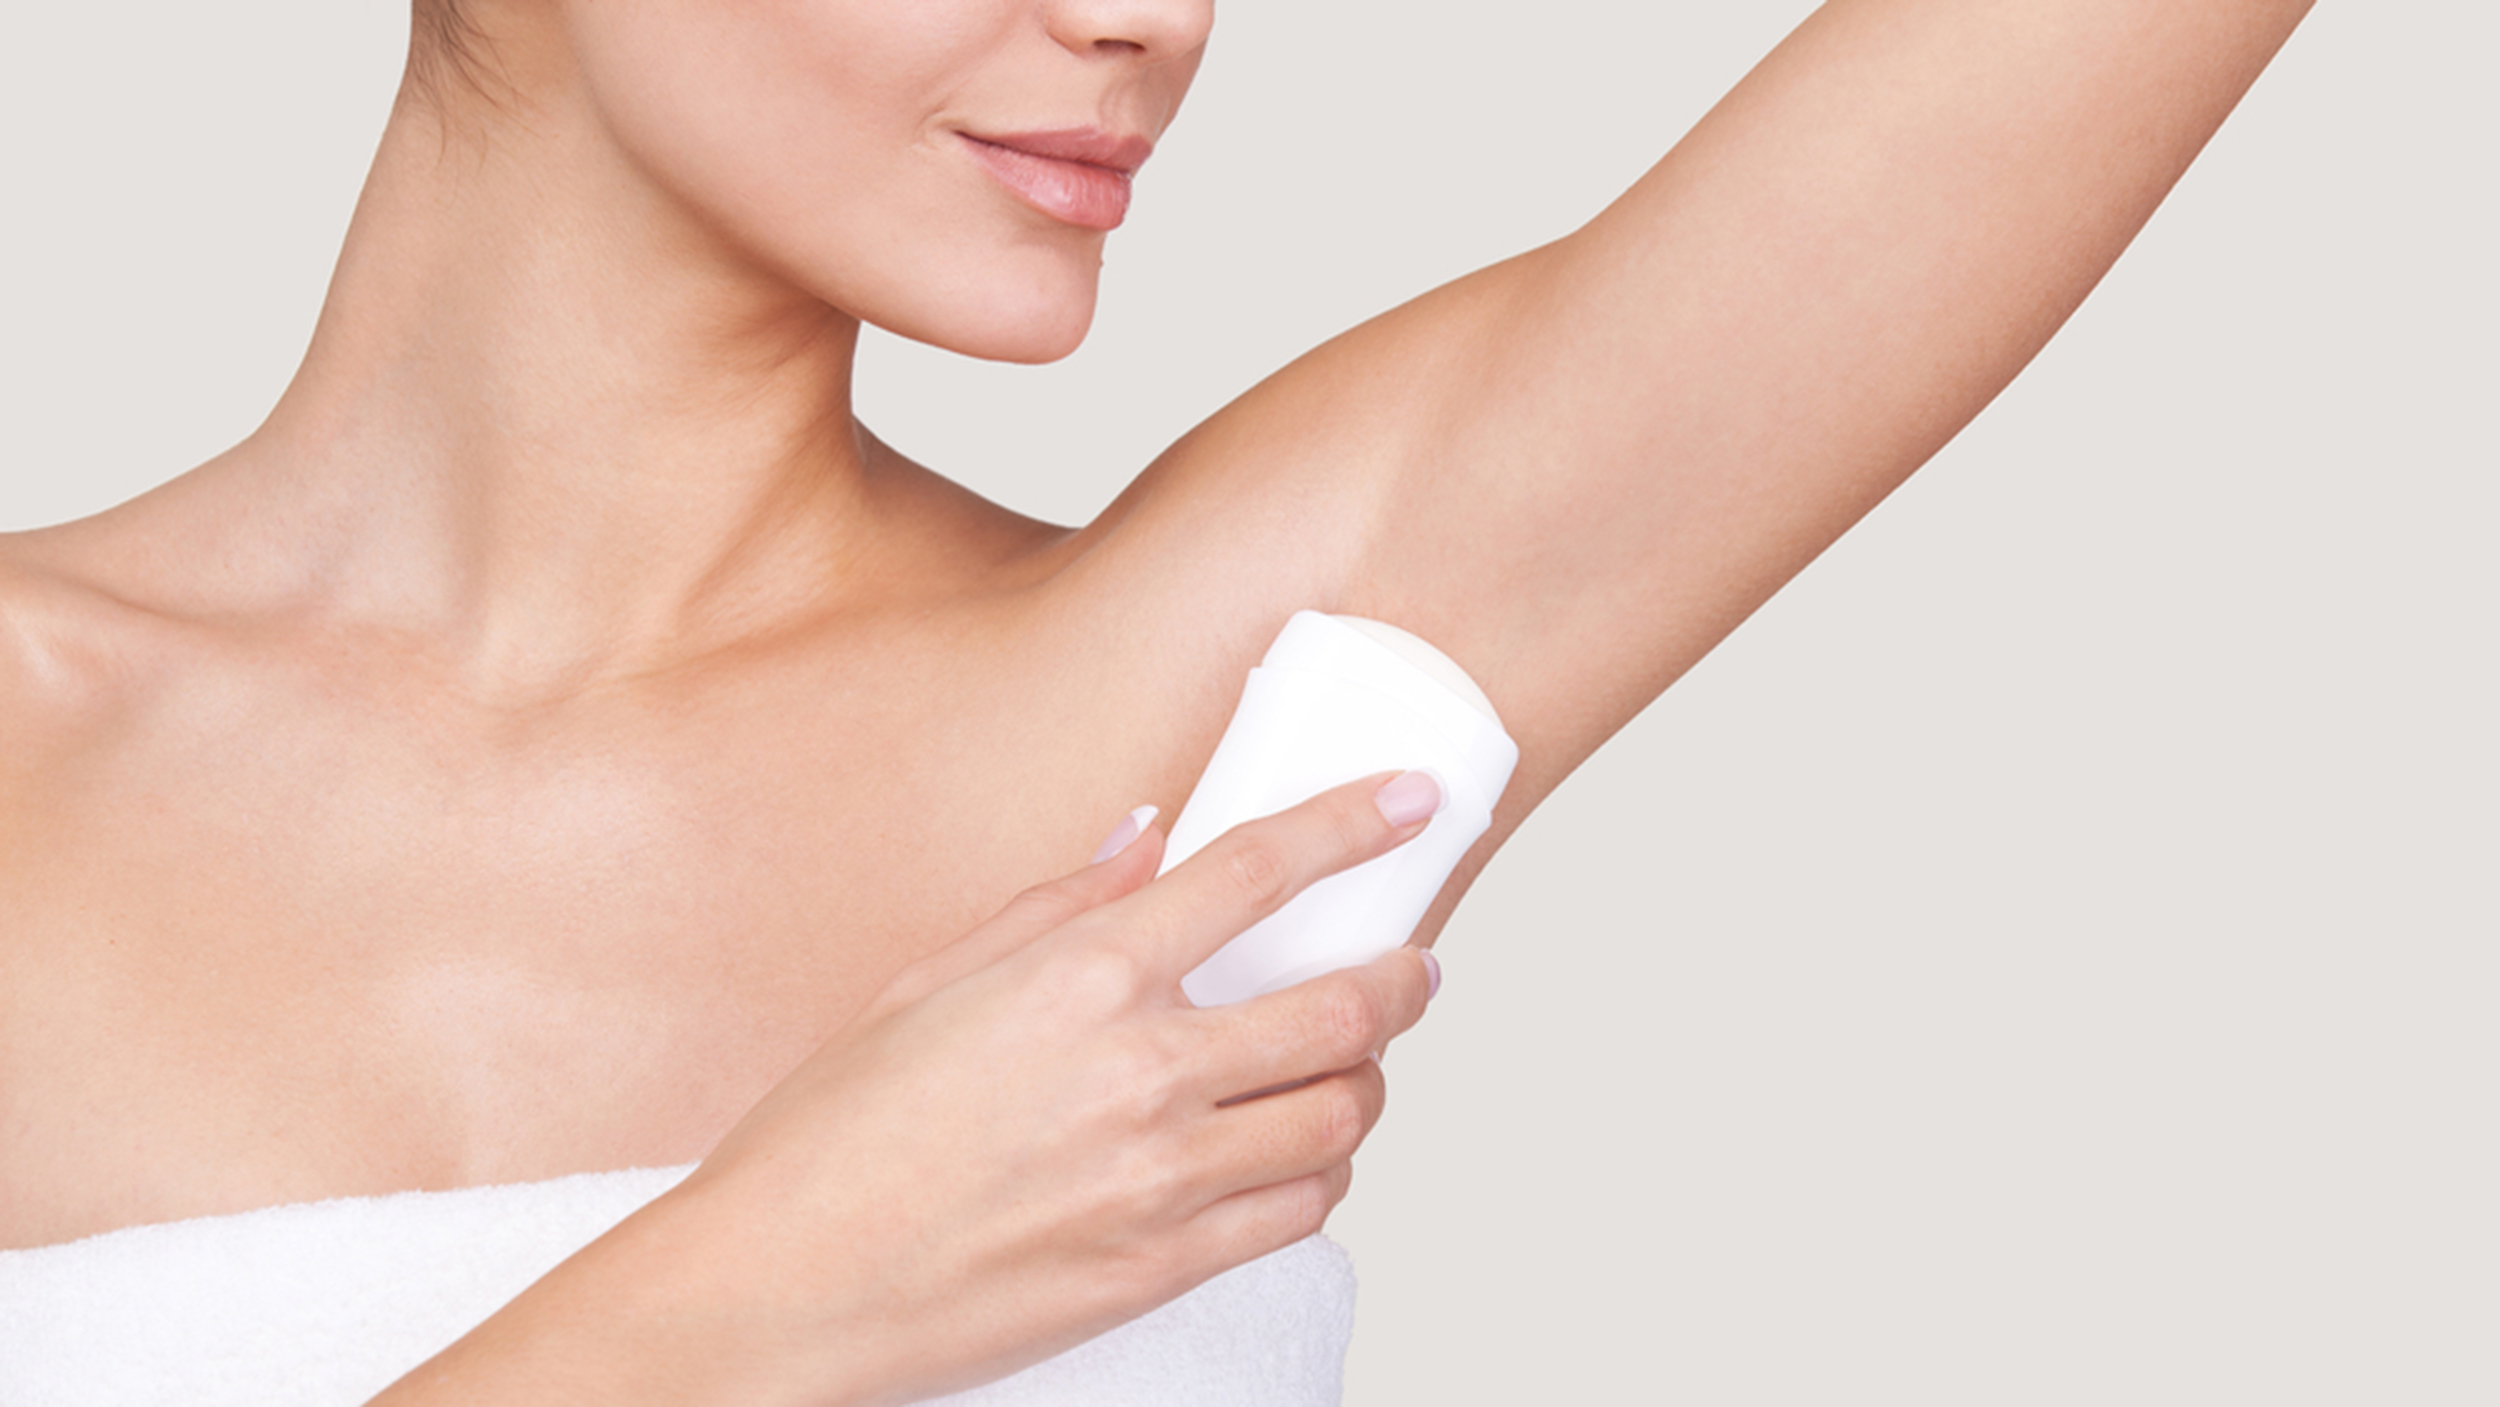 best deodorant for women natural deodorant brands to try